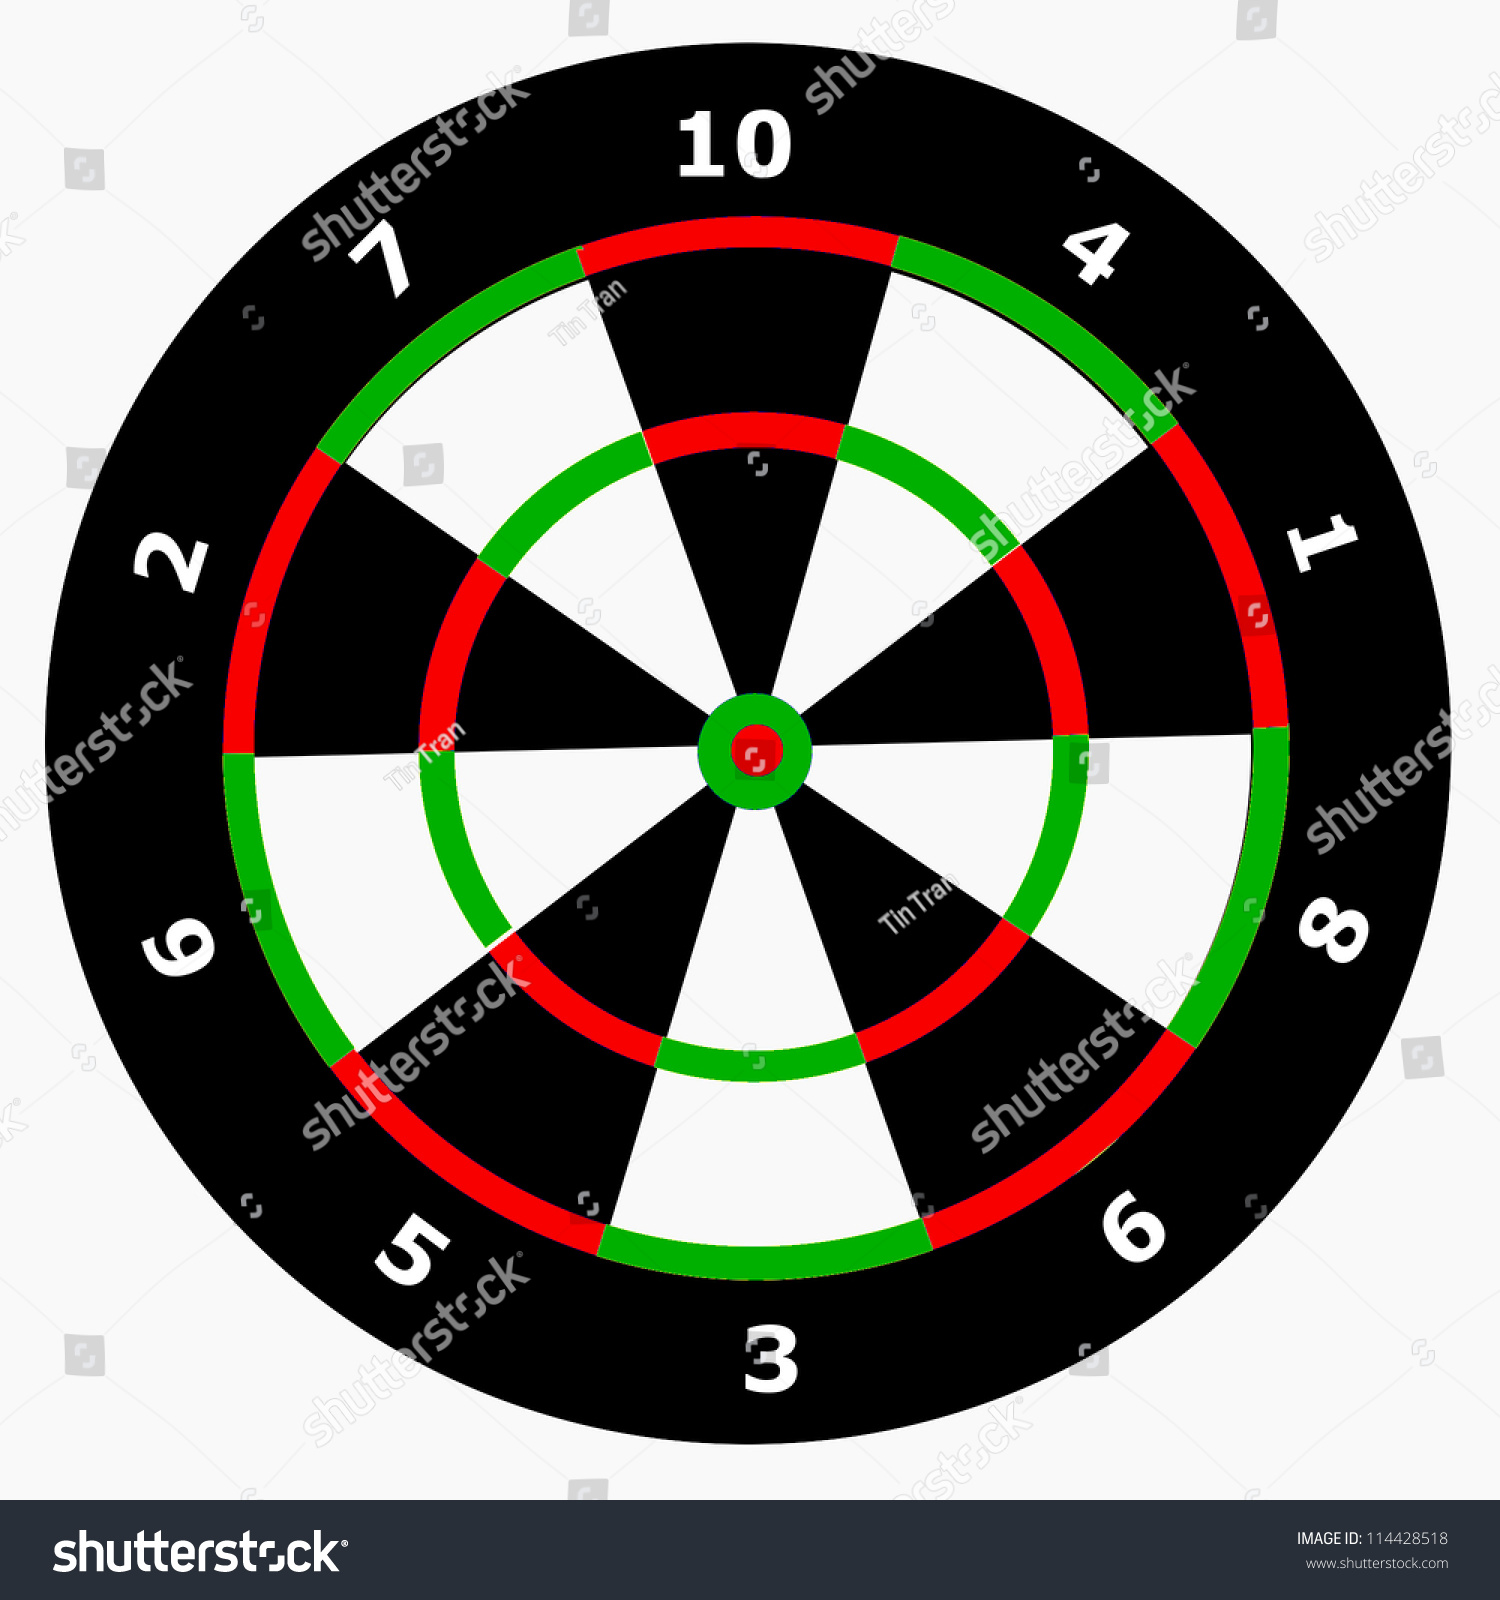 Royalty Free Stock Illustration Of Unique Dart Board Only 10 Points